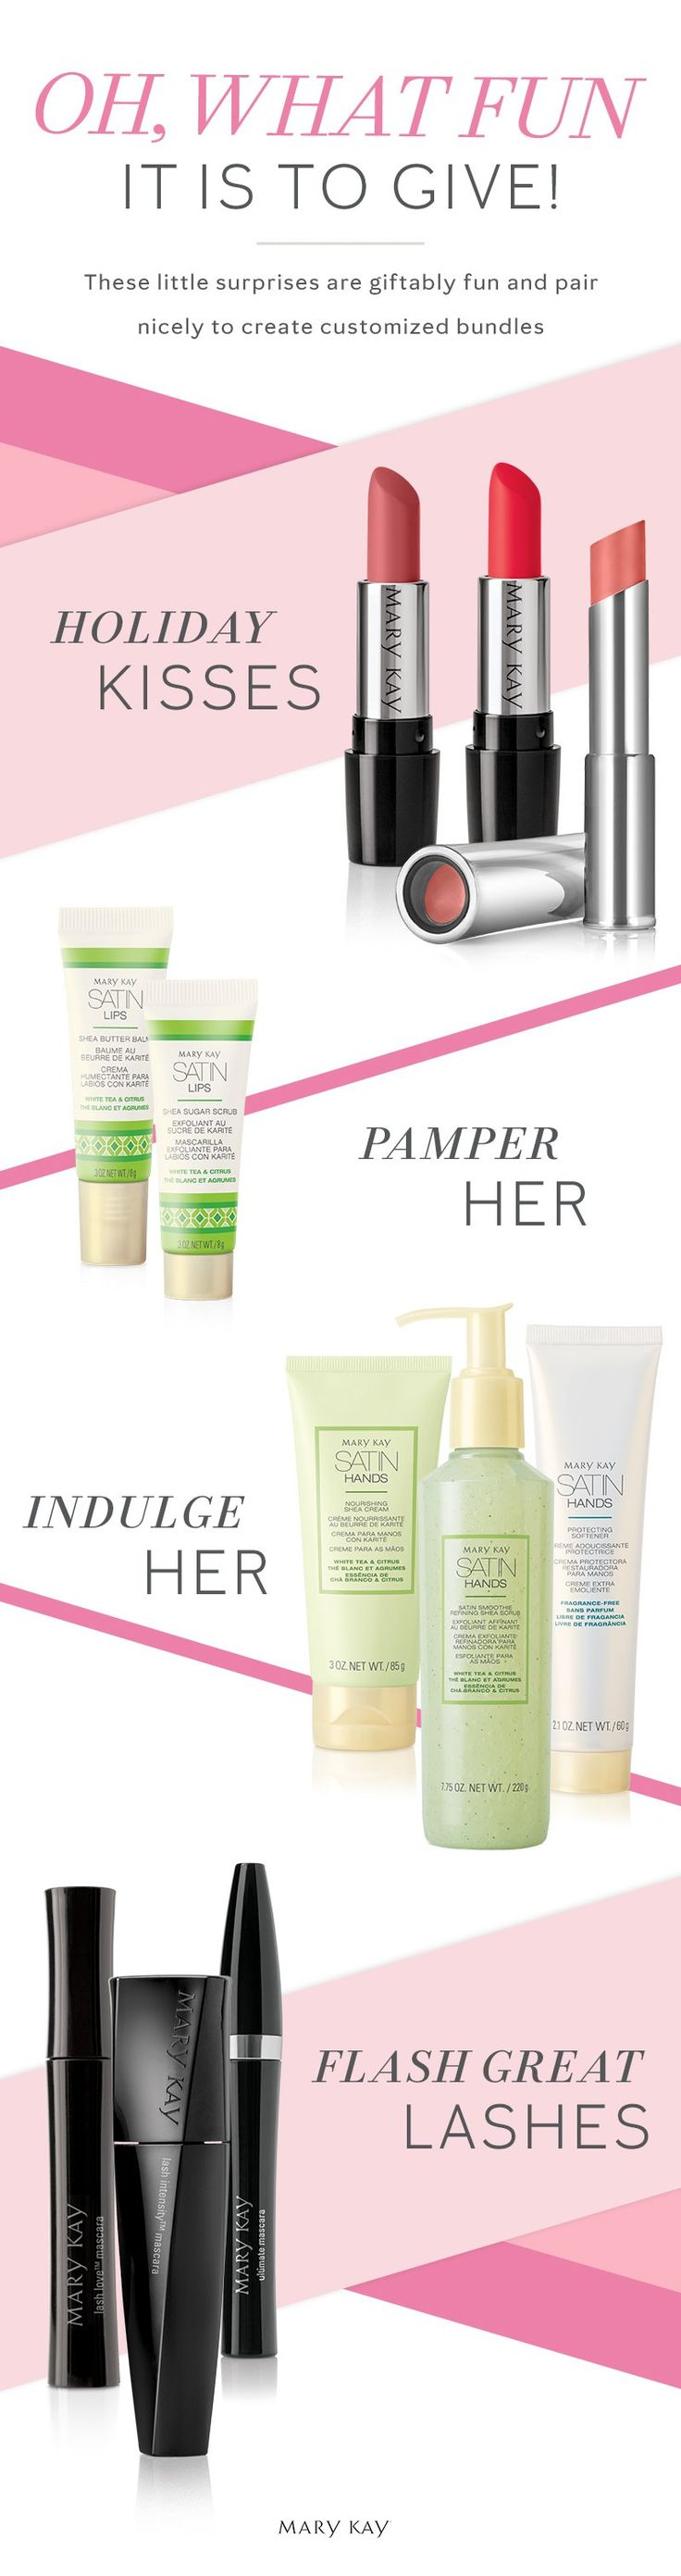 Stocking stuffers to knock her stocks off! Share a little joy with pampering products she'll love all year long. | Mary Kay